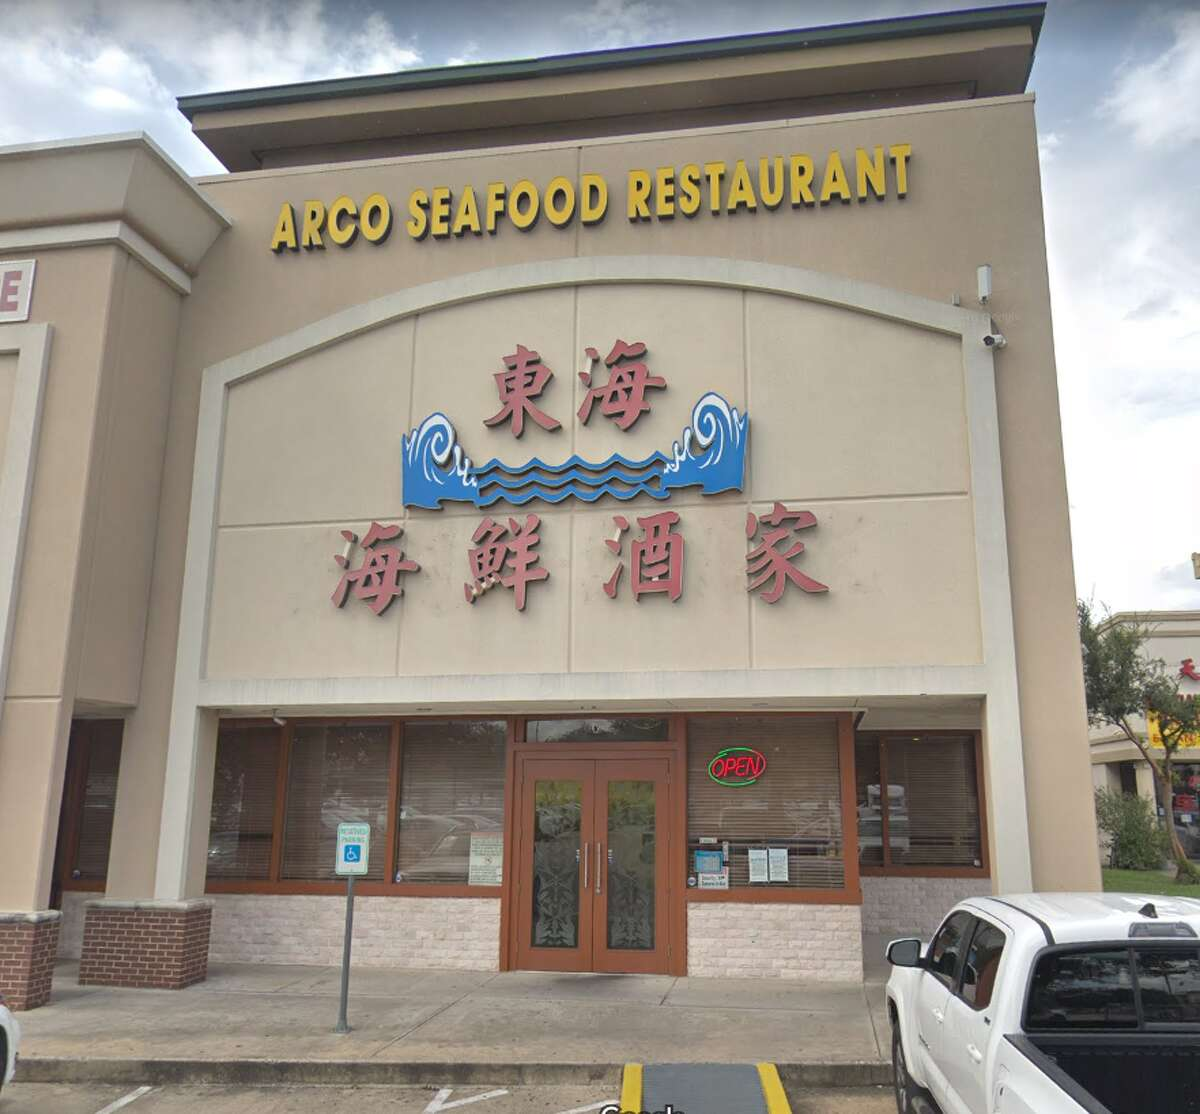 Arco Seafood 9896 Bellaire Demerits: 21 Inspection highlights: Observed hardened black substance on the carpet at kitchen entrance; Empty containers, boots and soiled linens found in restaurant (keep restaurant free of litter)